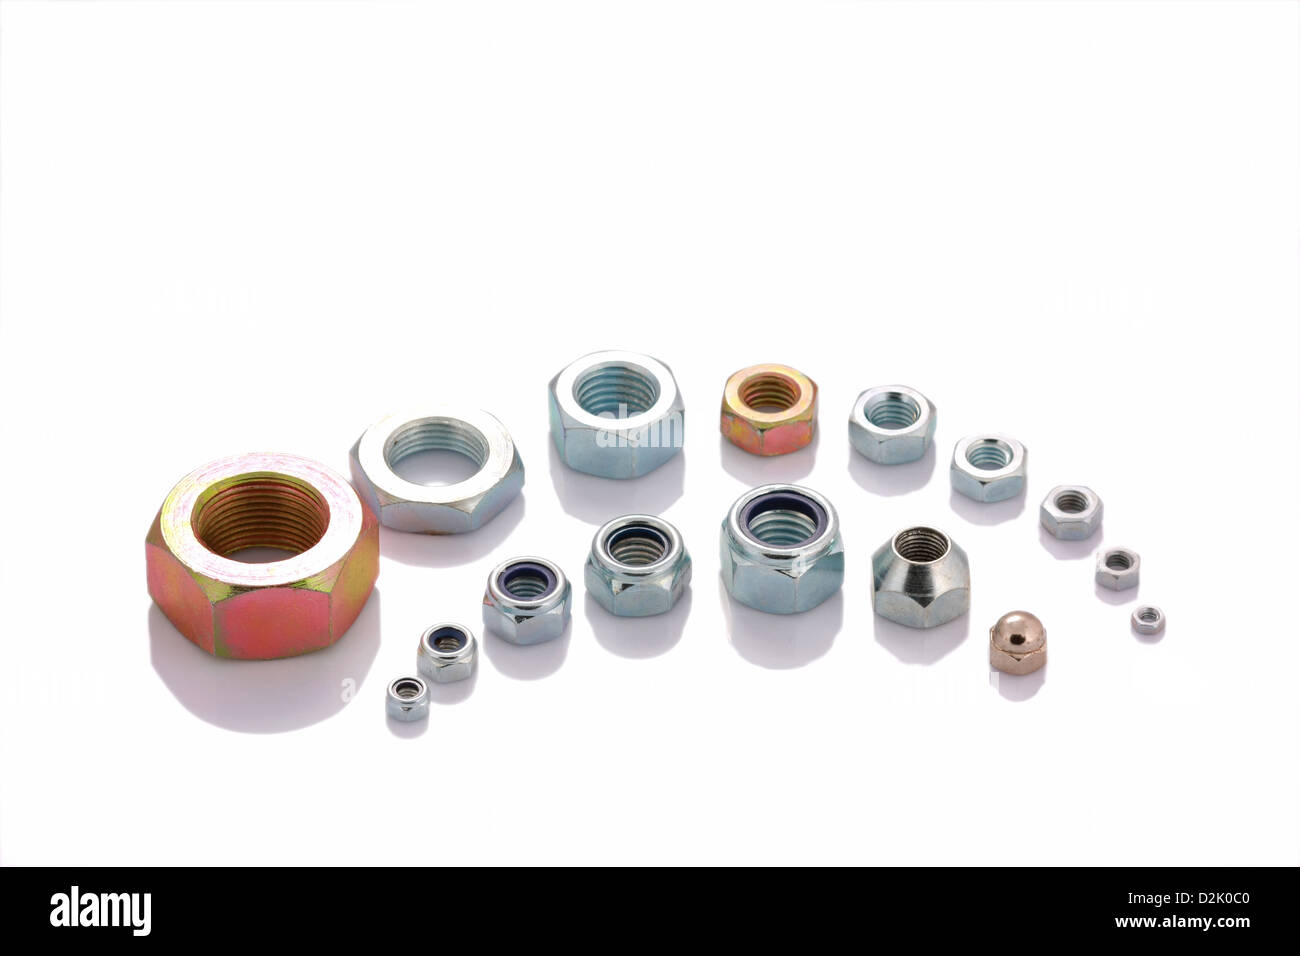 Varied steel nuts isolated on white background with copyspace - Stock Image